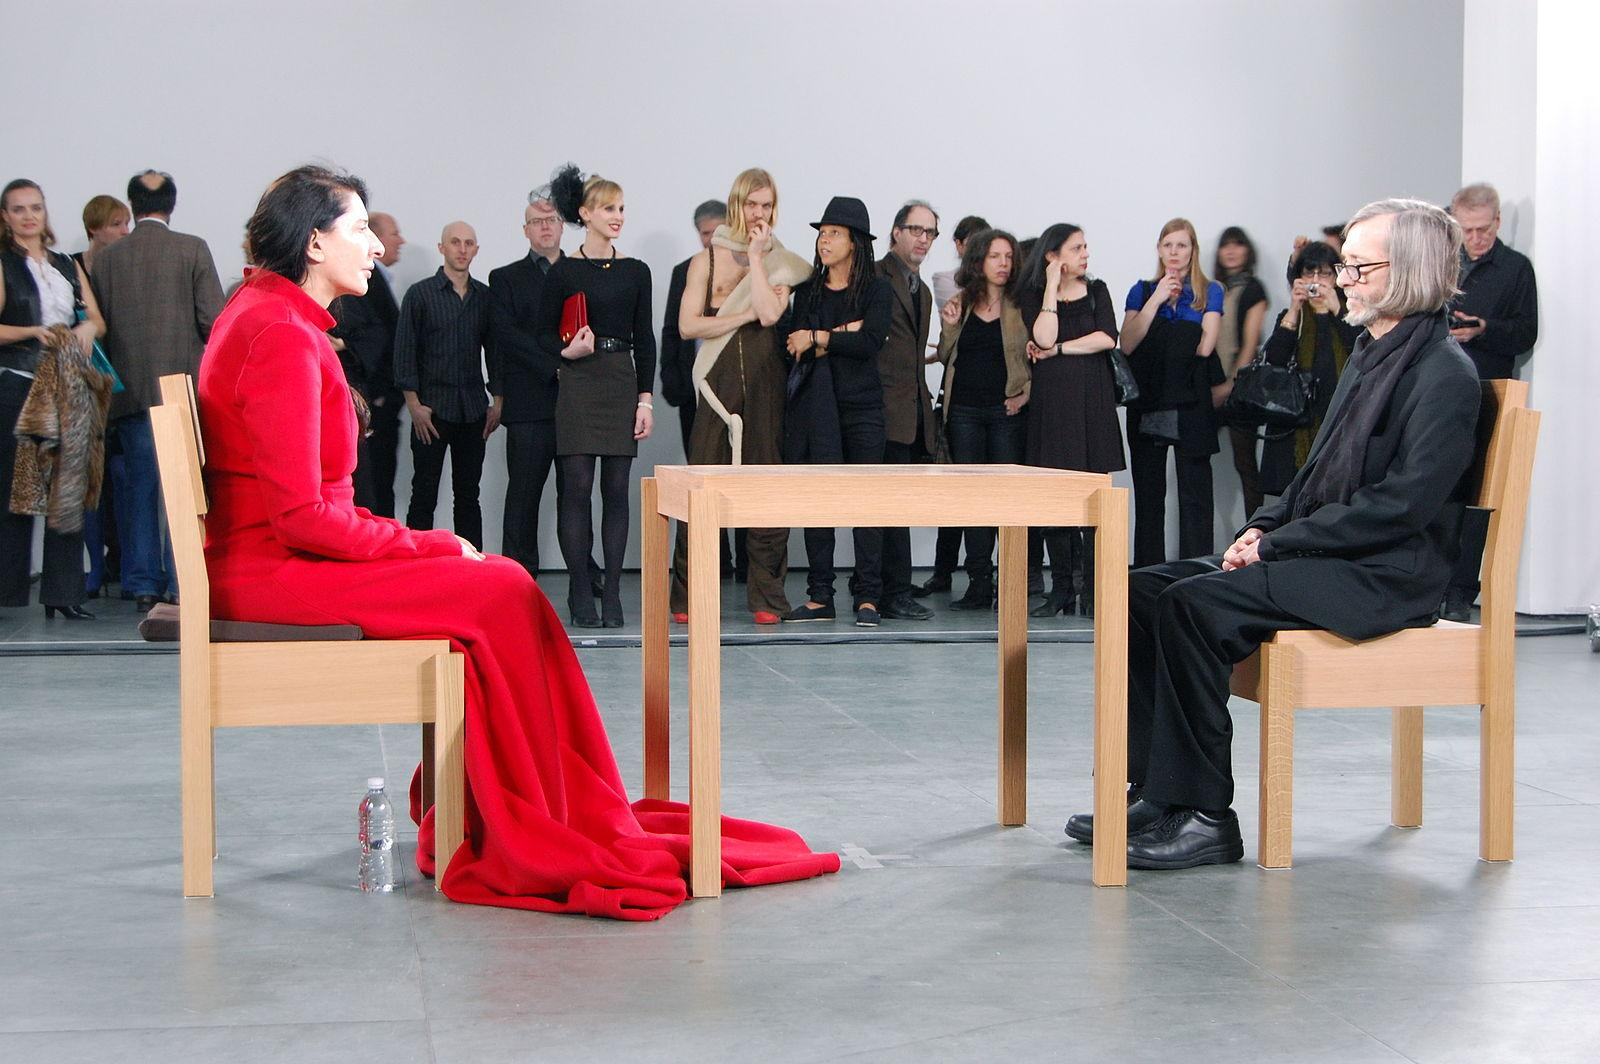 Macintosh HD:Users:matthewlevine:Desktop:VICE:Creators Project:Marina_Abramović,_The_Artist_is_Present,_2010_(2).jpg